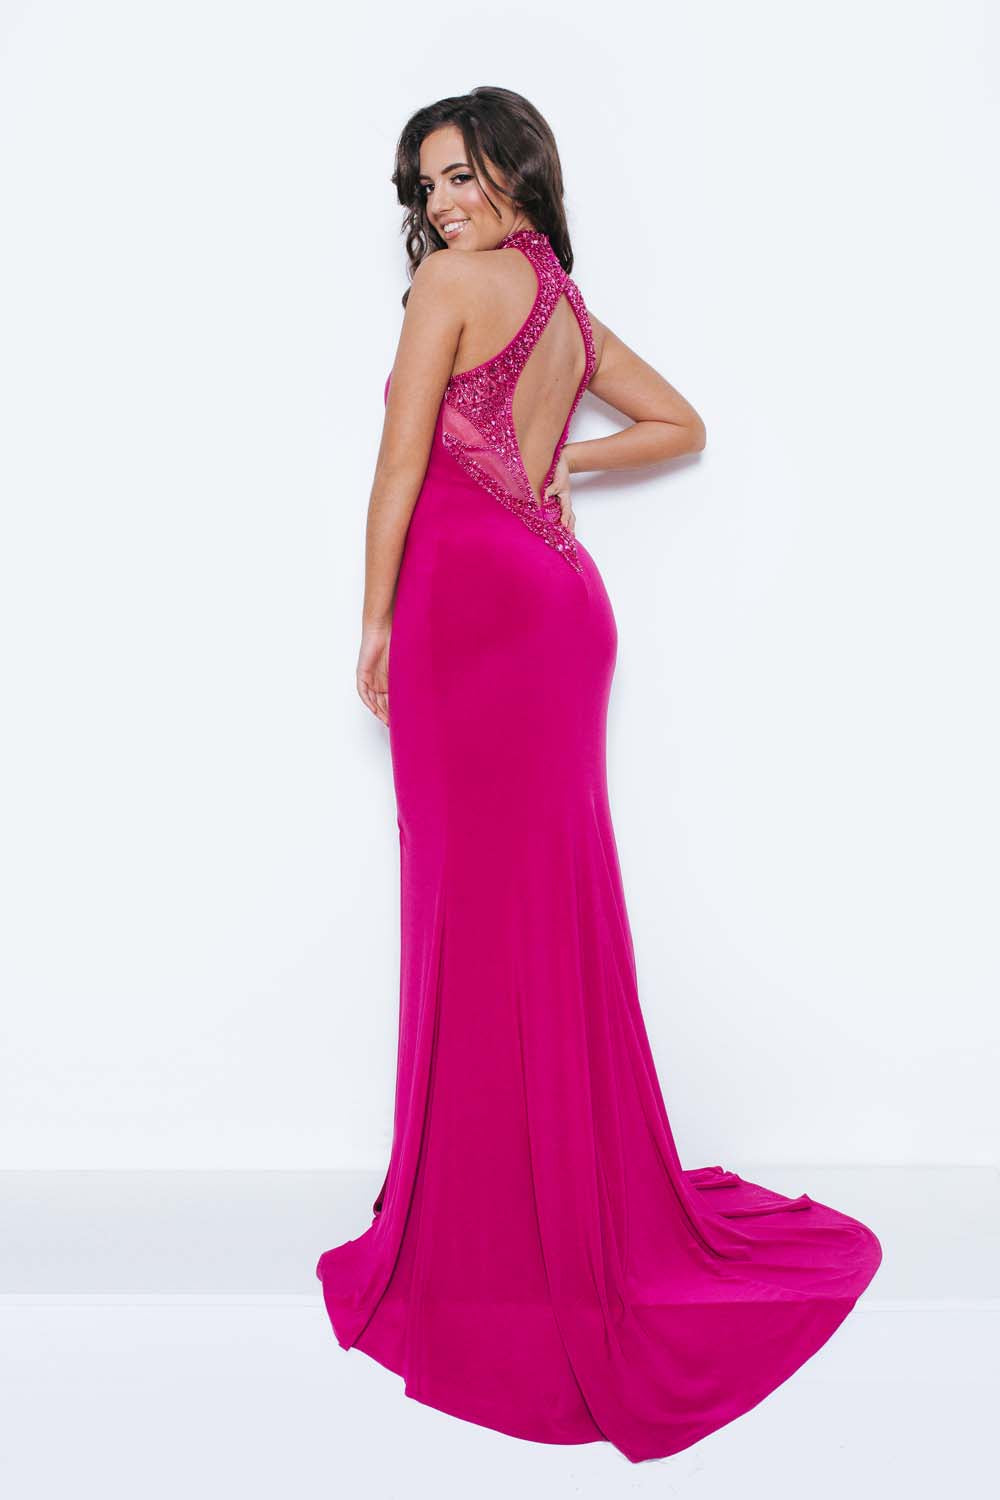 Katen Halterneck Evening Gown - Gissings Boutique